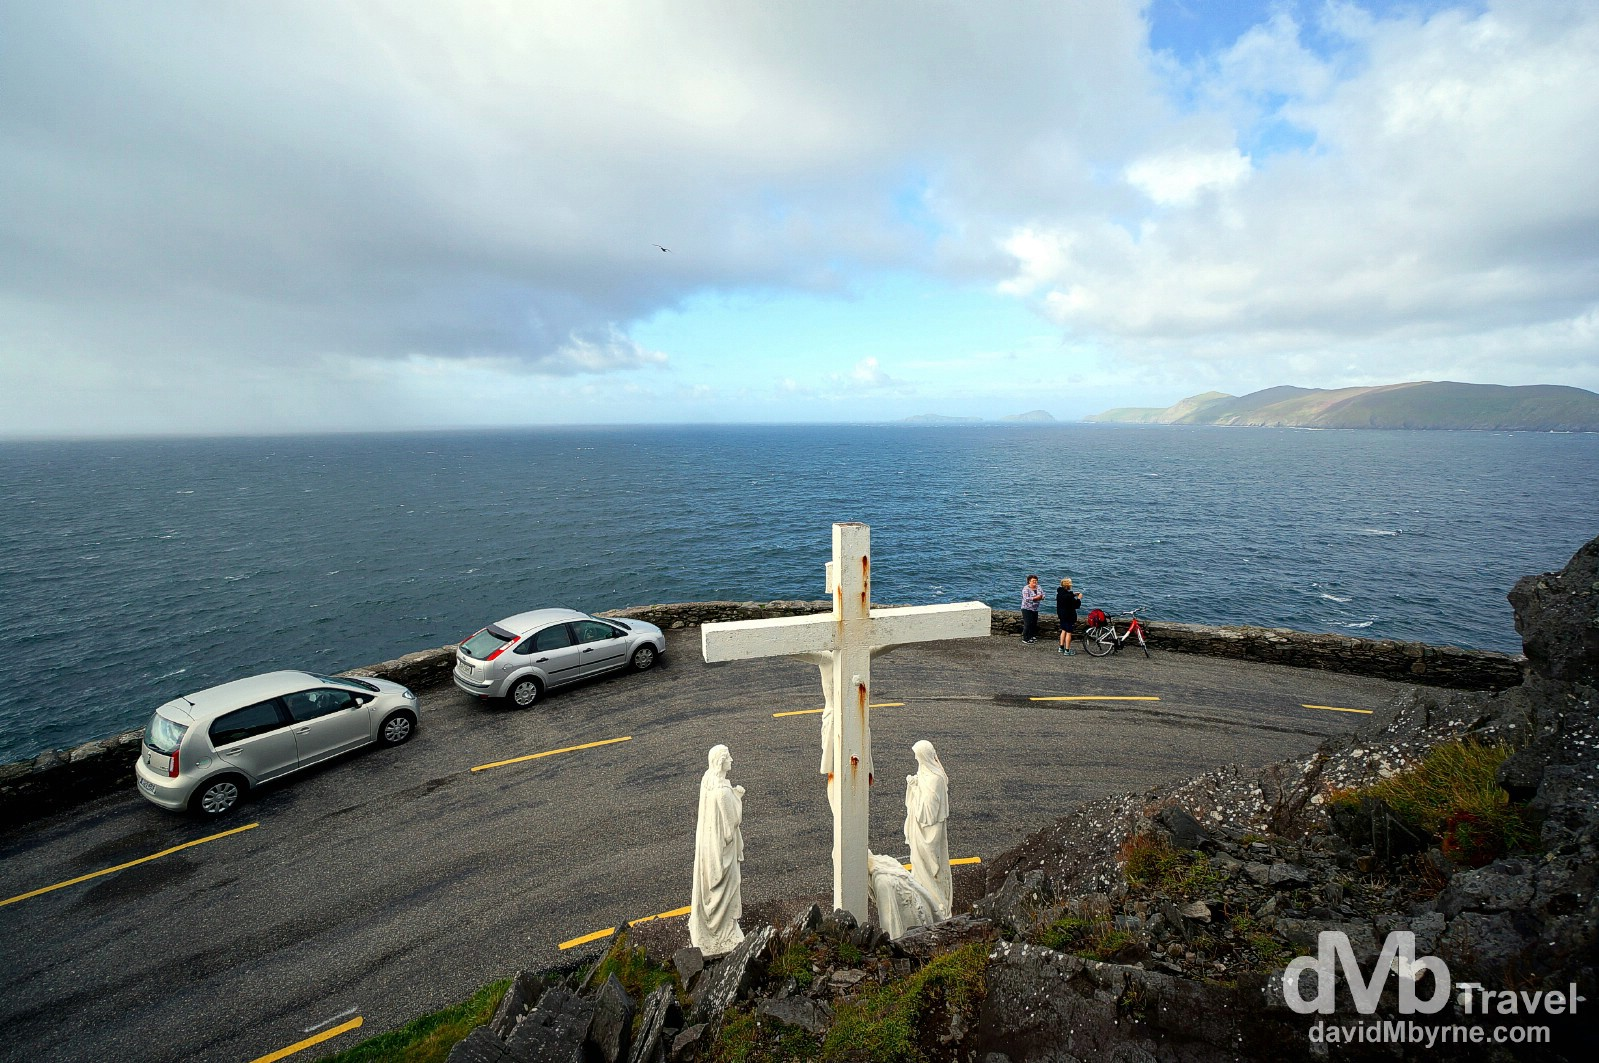 The cross at Slea Head, Dingle Peninsula, Co. Kerry, Ireland. August 28, 2014.